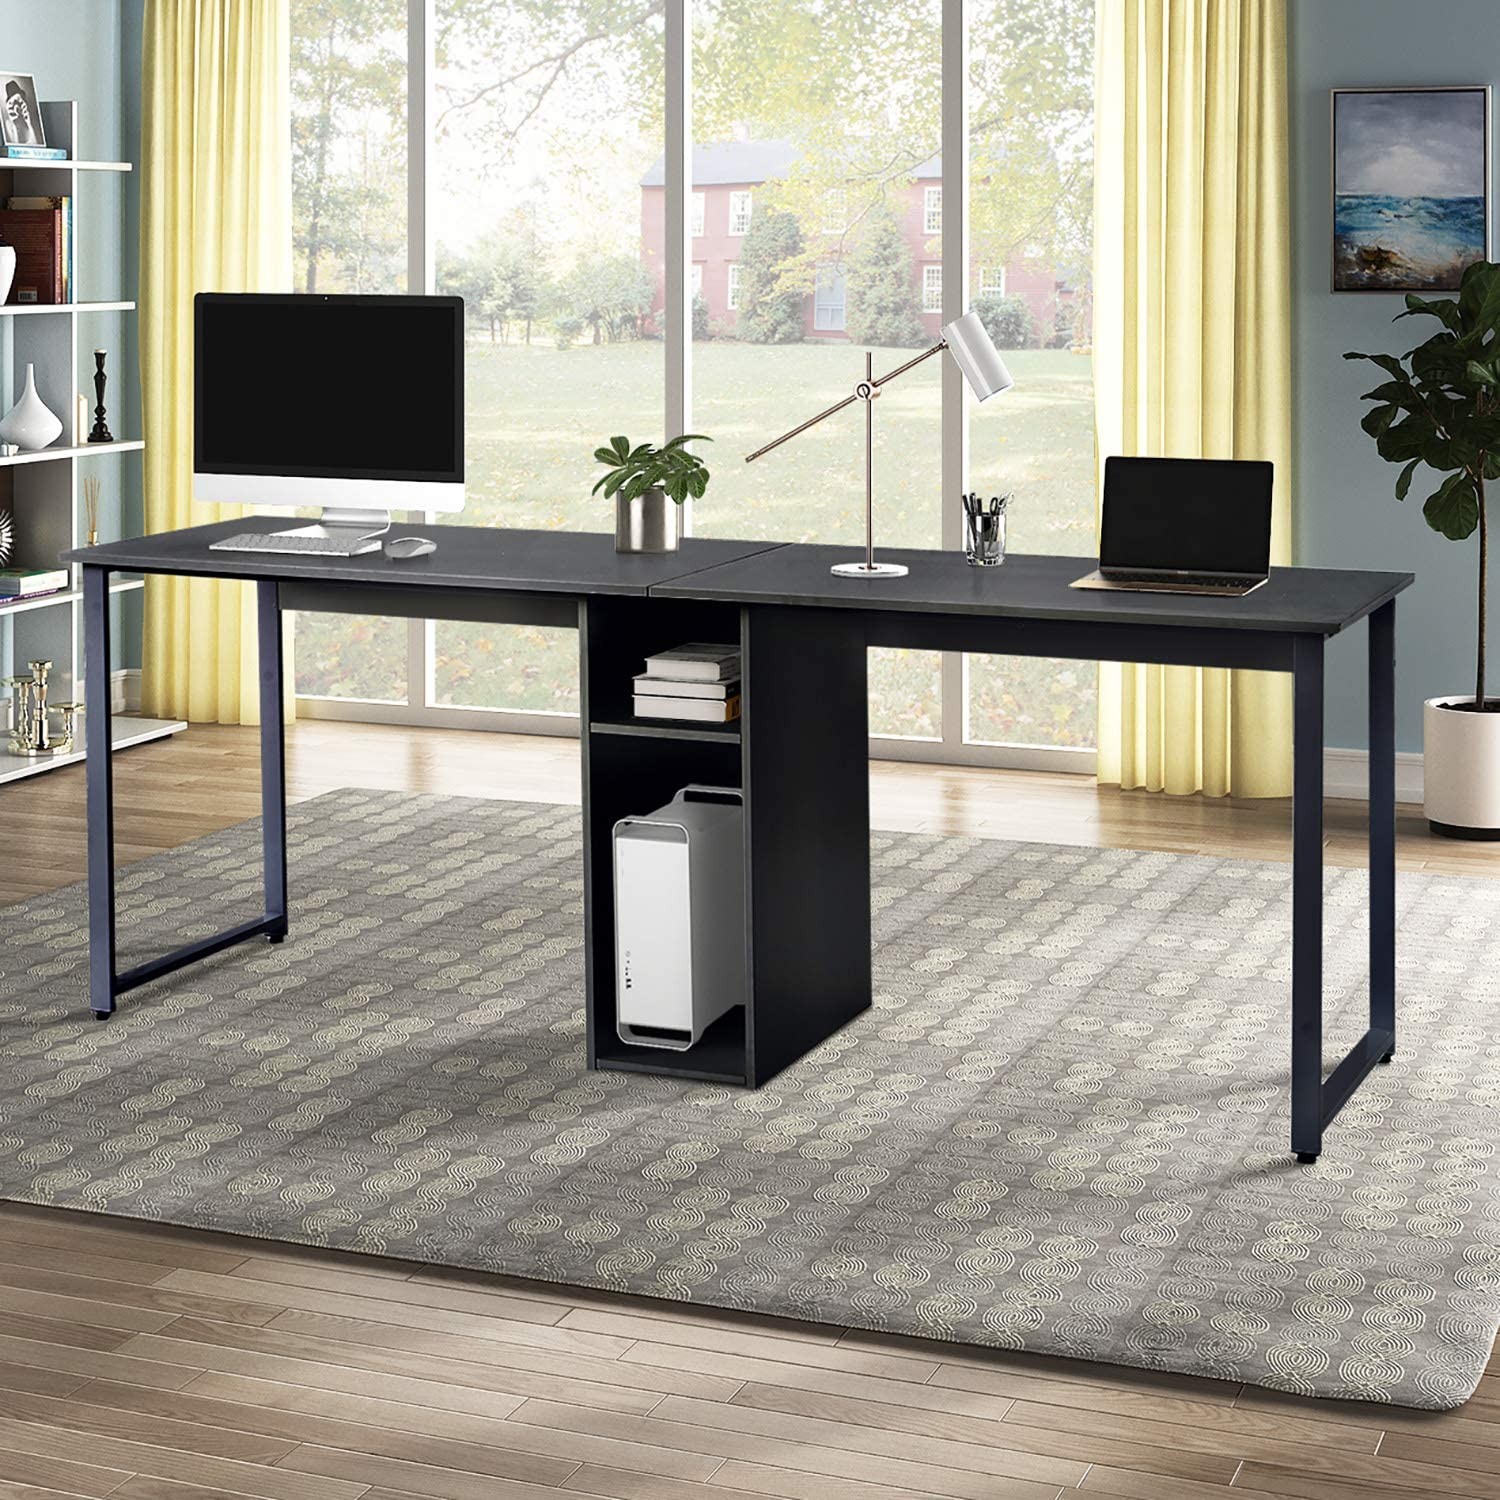 Merax Home Office 2-Person, Large Double Workstation, Writing Storage Desk, Black